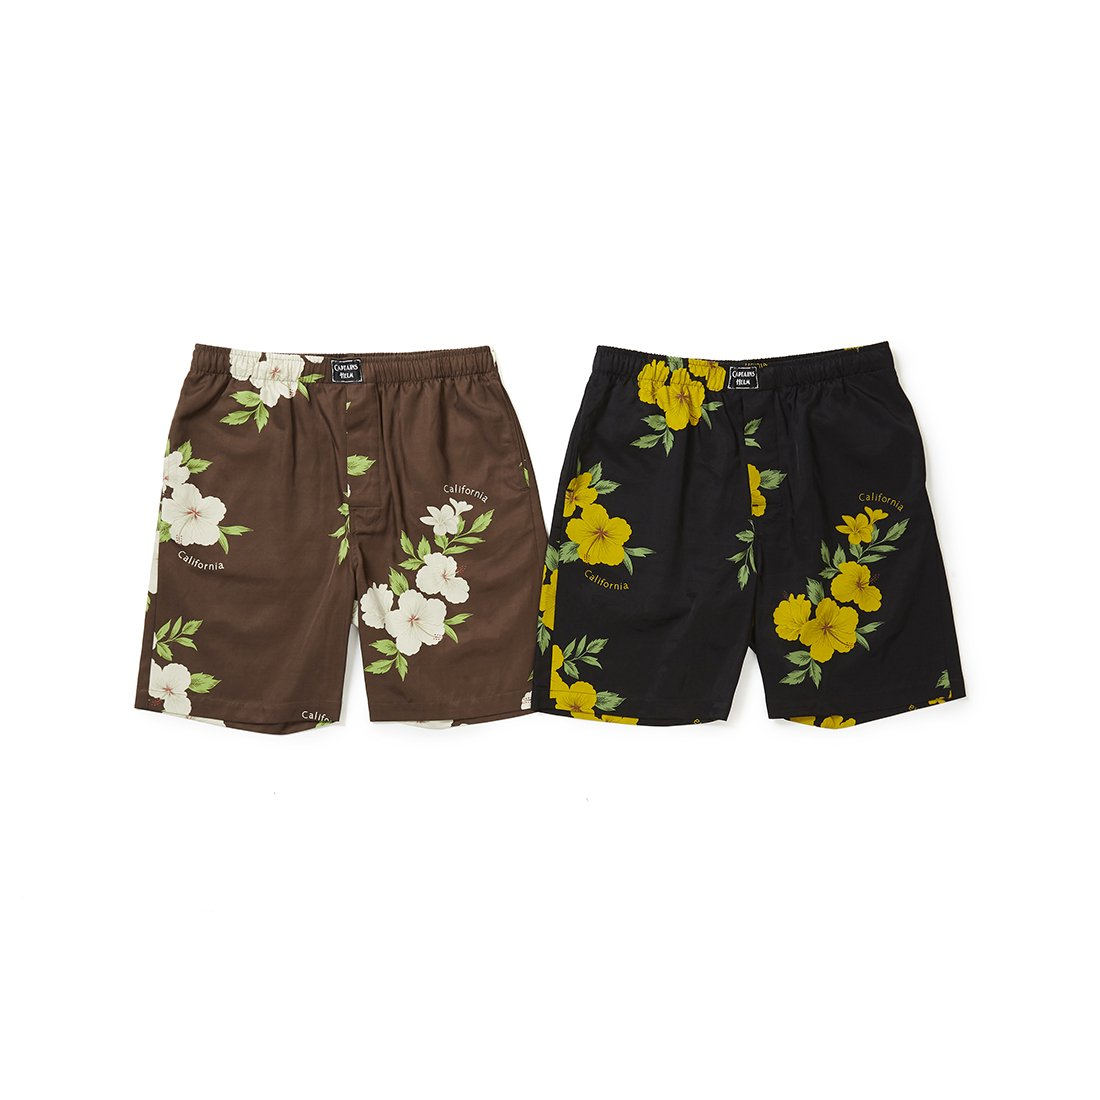 CAPTAINS HELM #CALIFORNIA ALOHA SHORTS